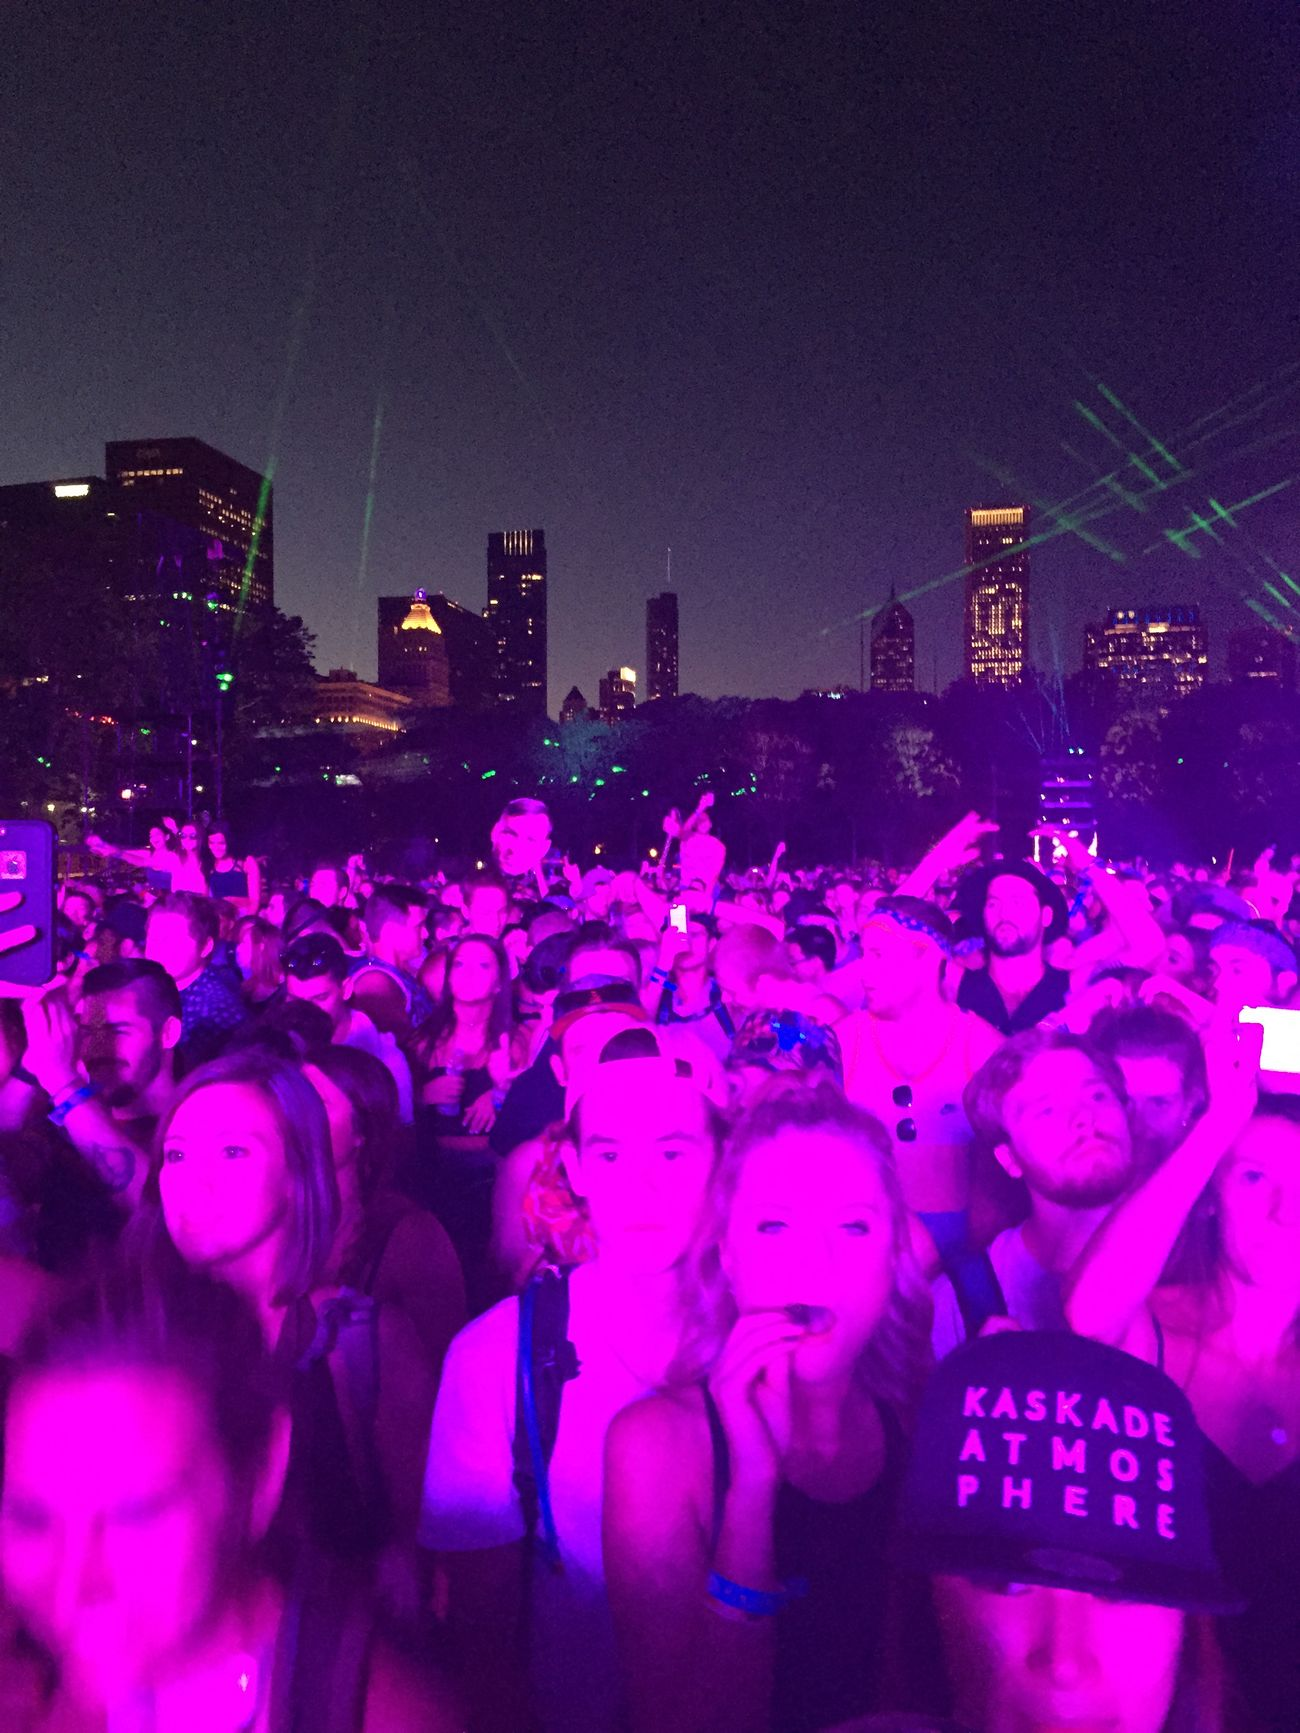 Kaskade at Lollapolooza 2015 The Fan Club Electronic Music Shots Lollapalooza Purple Chicago Concert Concert Photography